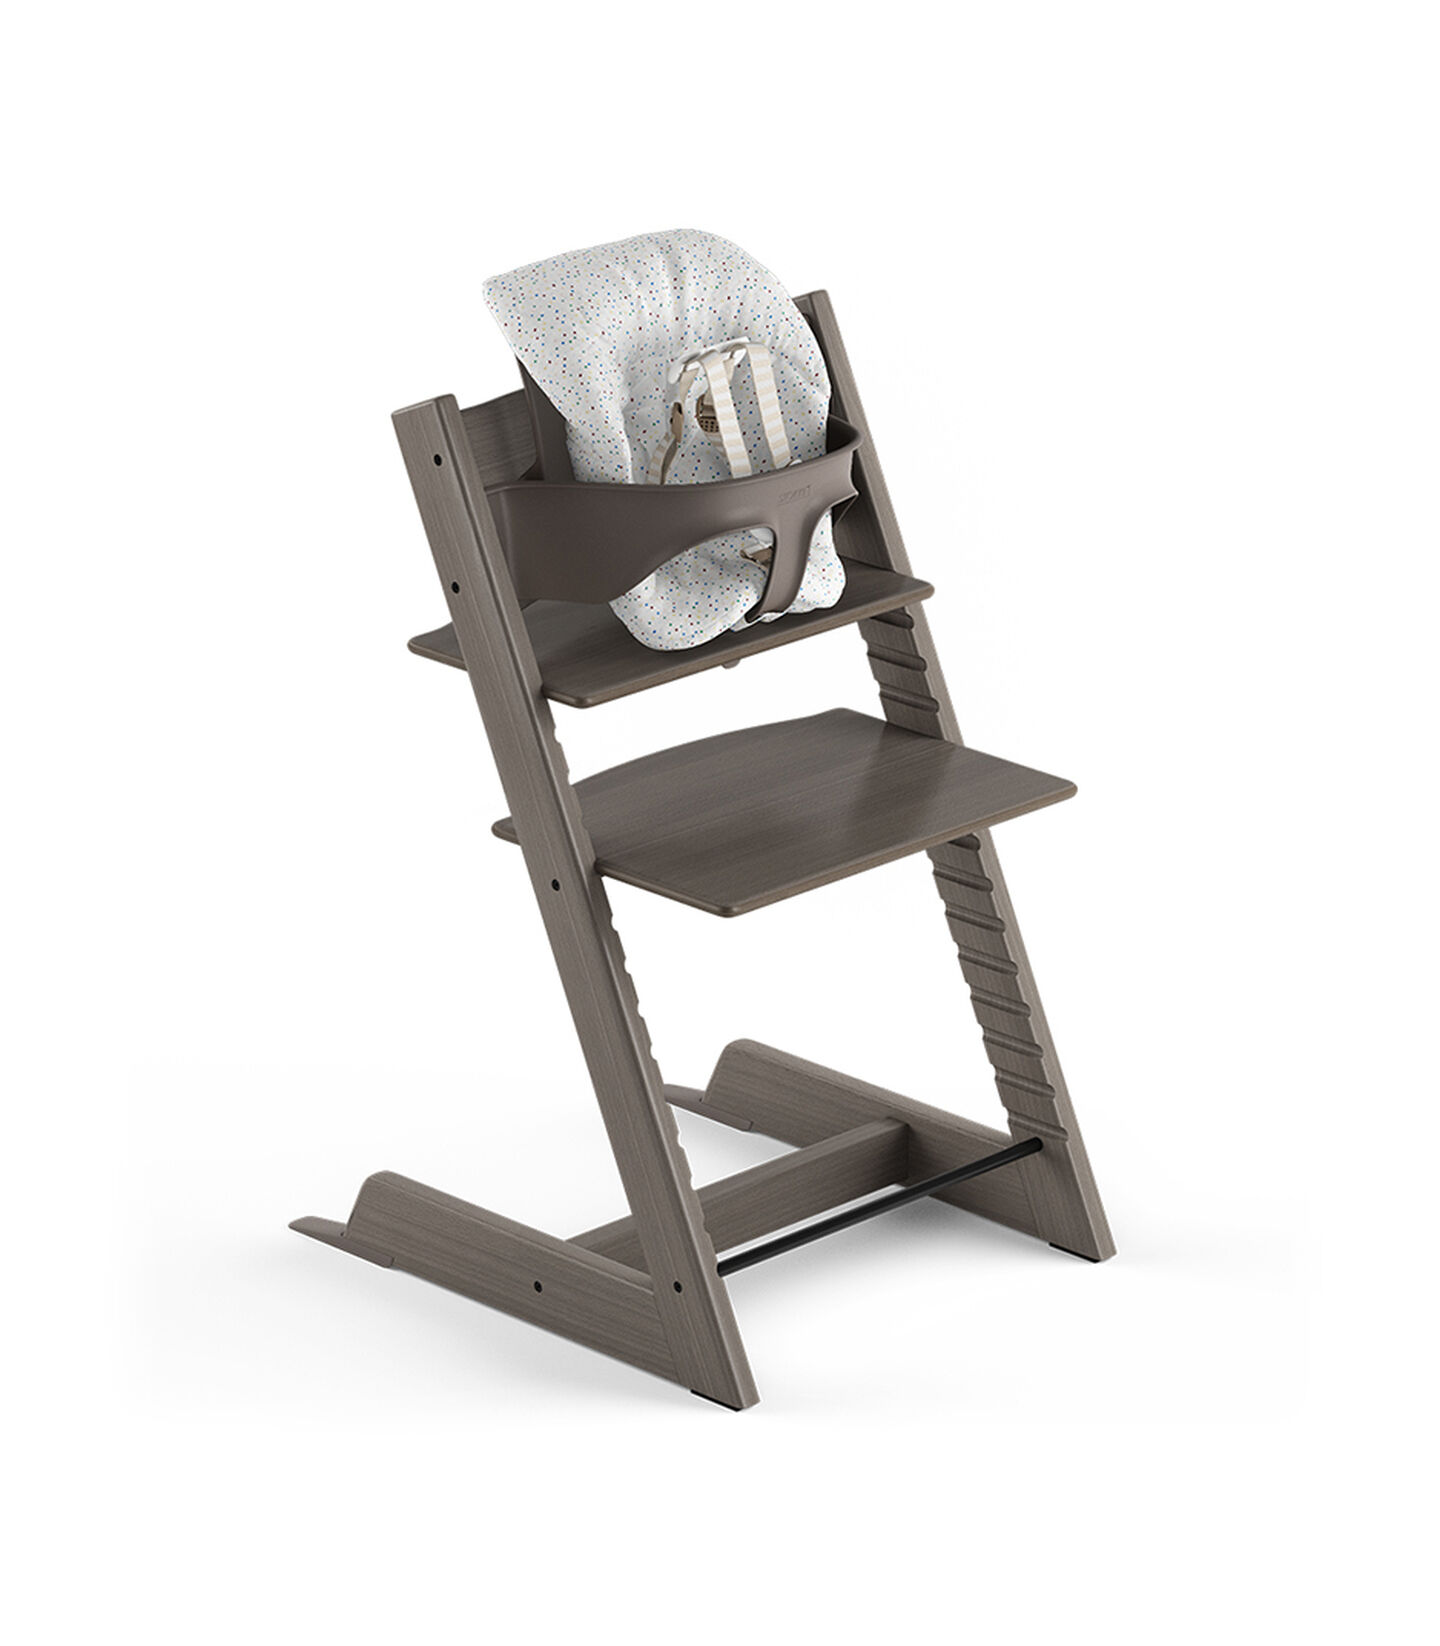 Tripp Trapp® Hazy Grey, Beech. With Tripp Trapp® Baby Set and Baby Cushion Soft Sprinkle. US version with Harness.